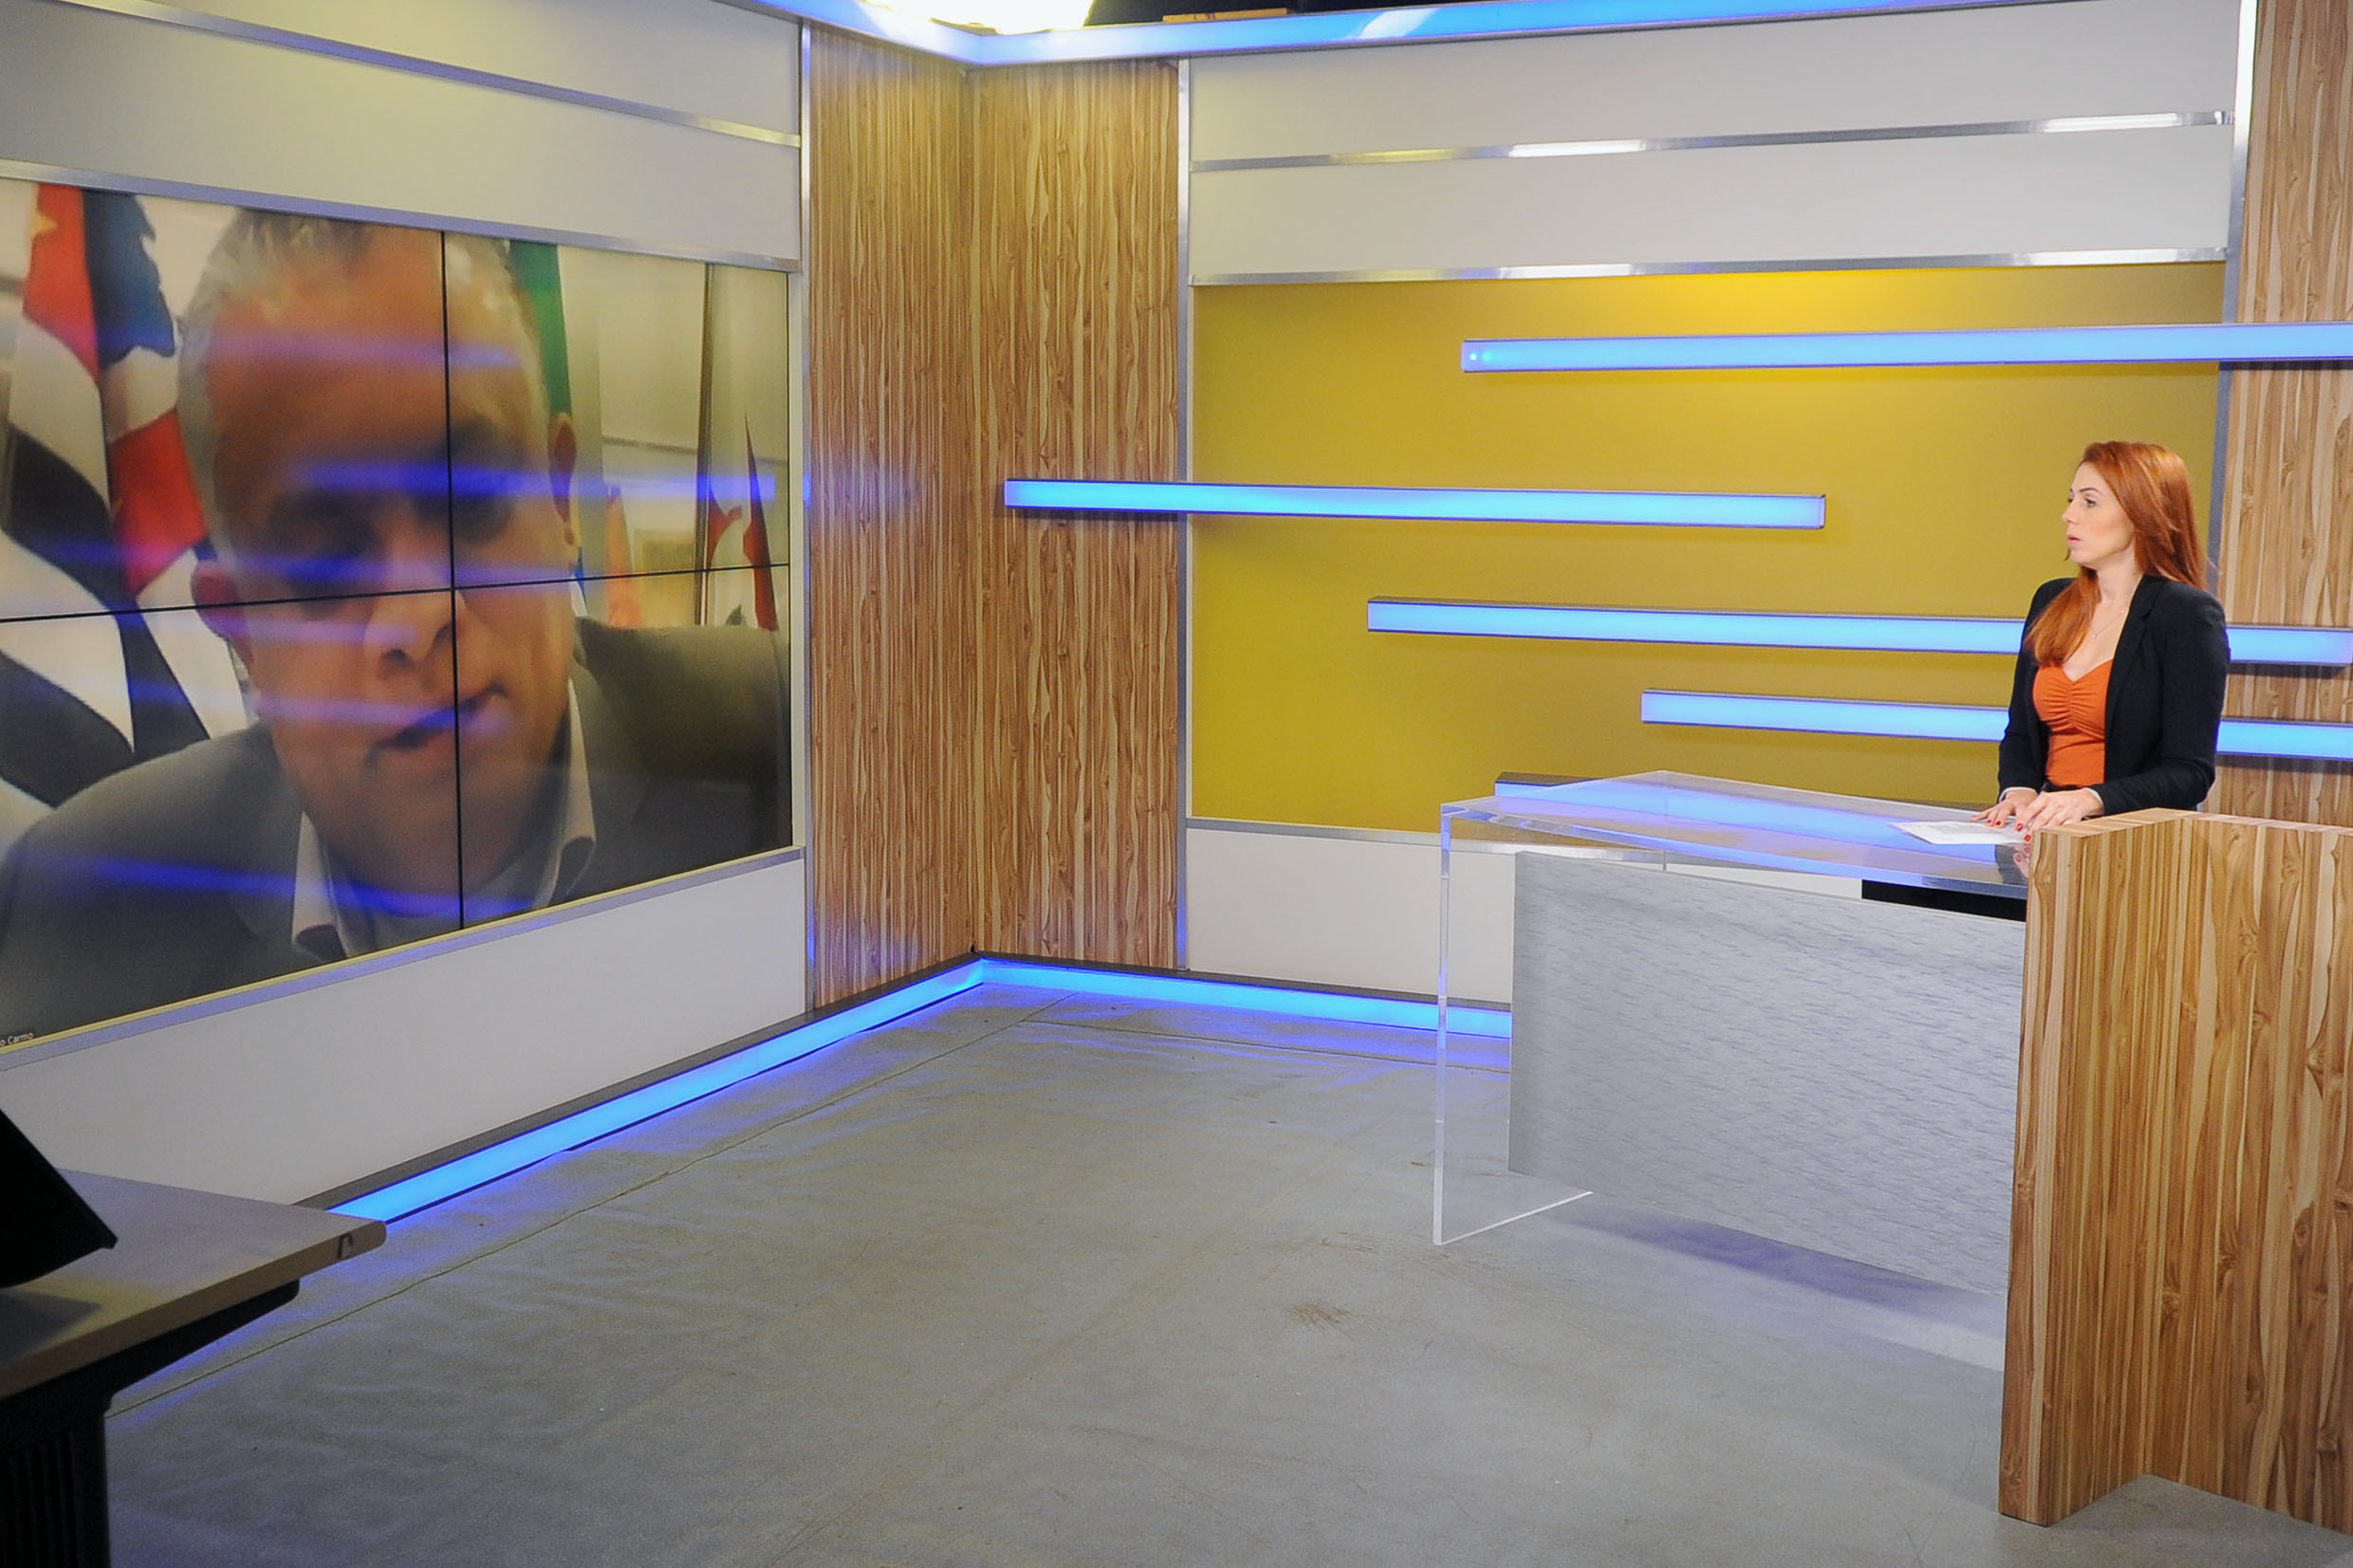 Tribuna Virtual <a style='float:right' href='https://www3.al.sp.gov.br/repositorio/noticia/N-07-2020/fg251236.jpg' target=_blank><img src='/_img/material-file-download-white.png' width='14px' alt='Clique para baixar a imagem'></a>